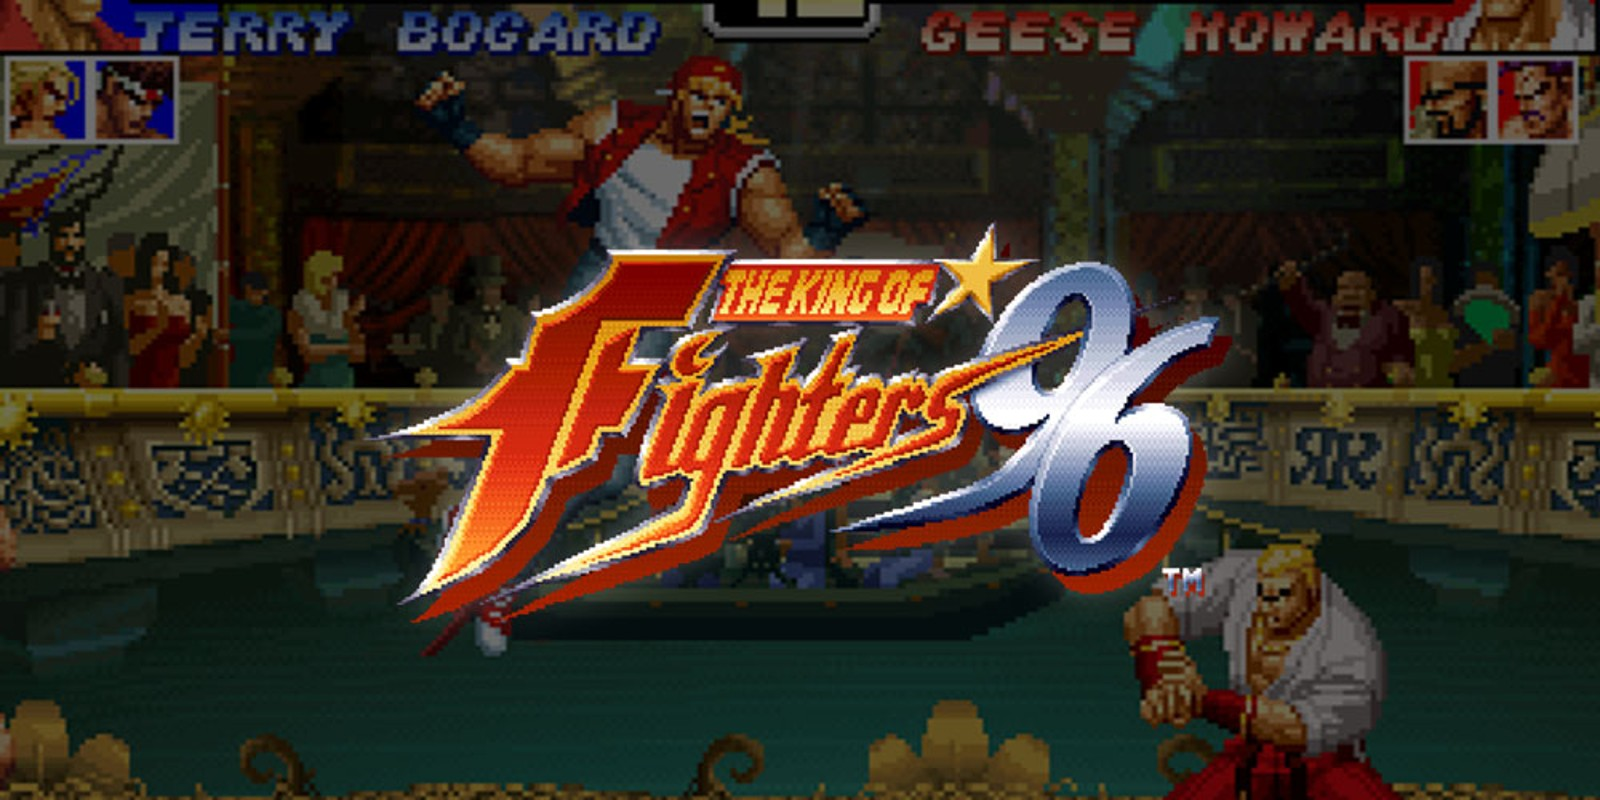 The King Of Fighters 96 Virtual Console Wii Games Nintendo